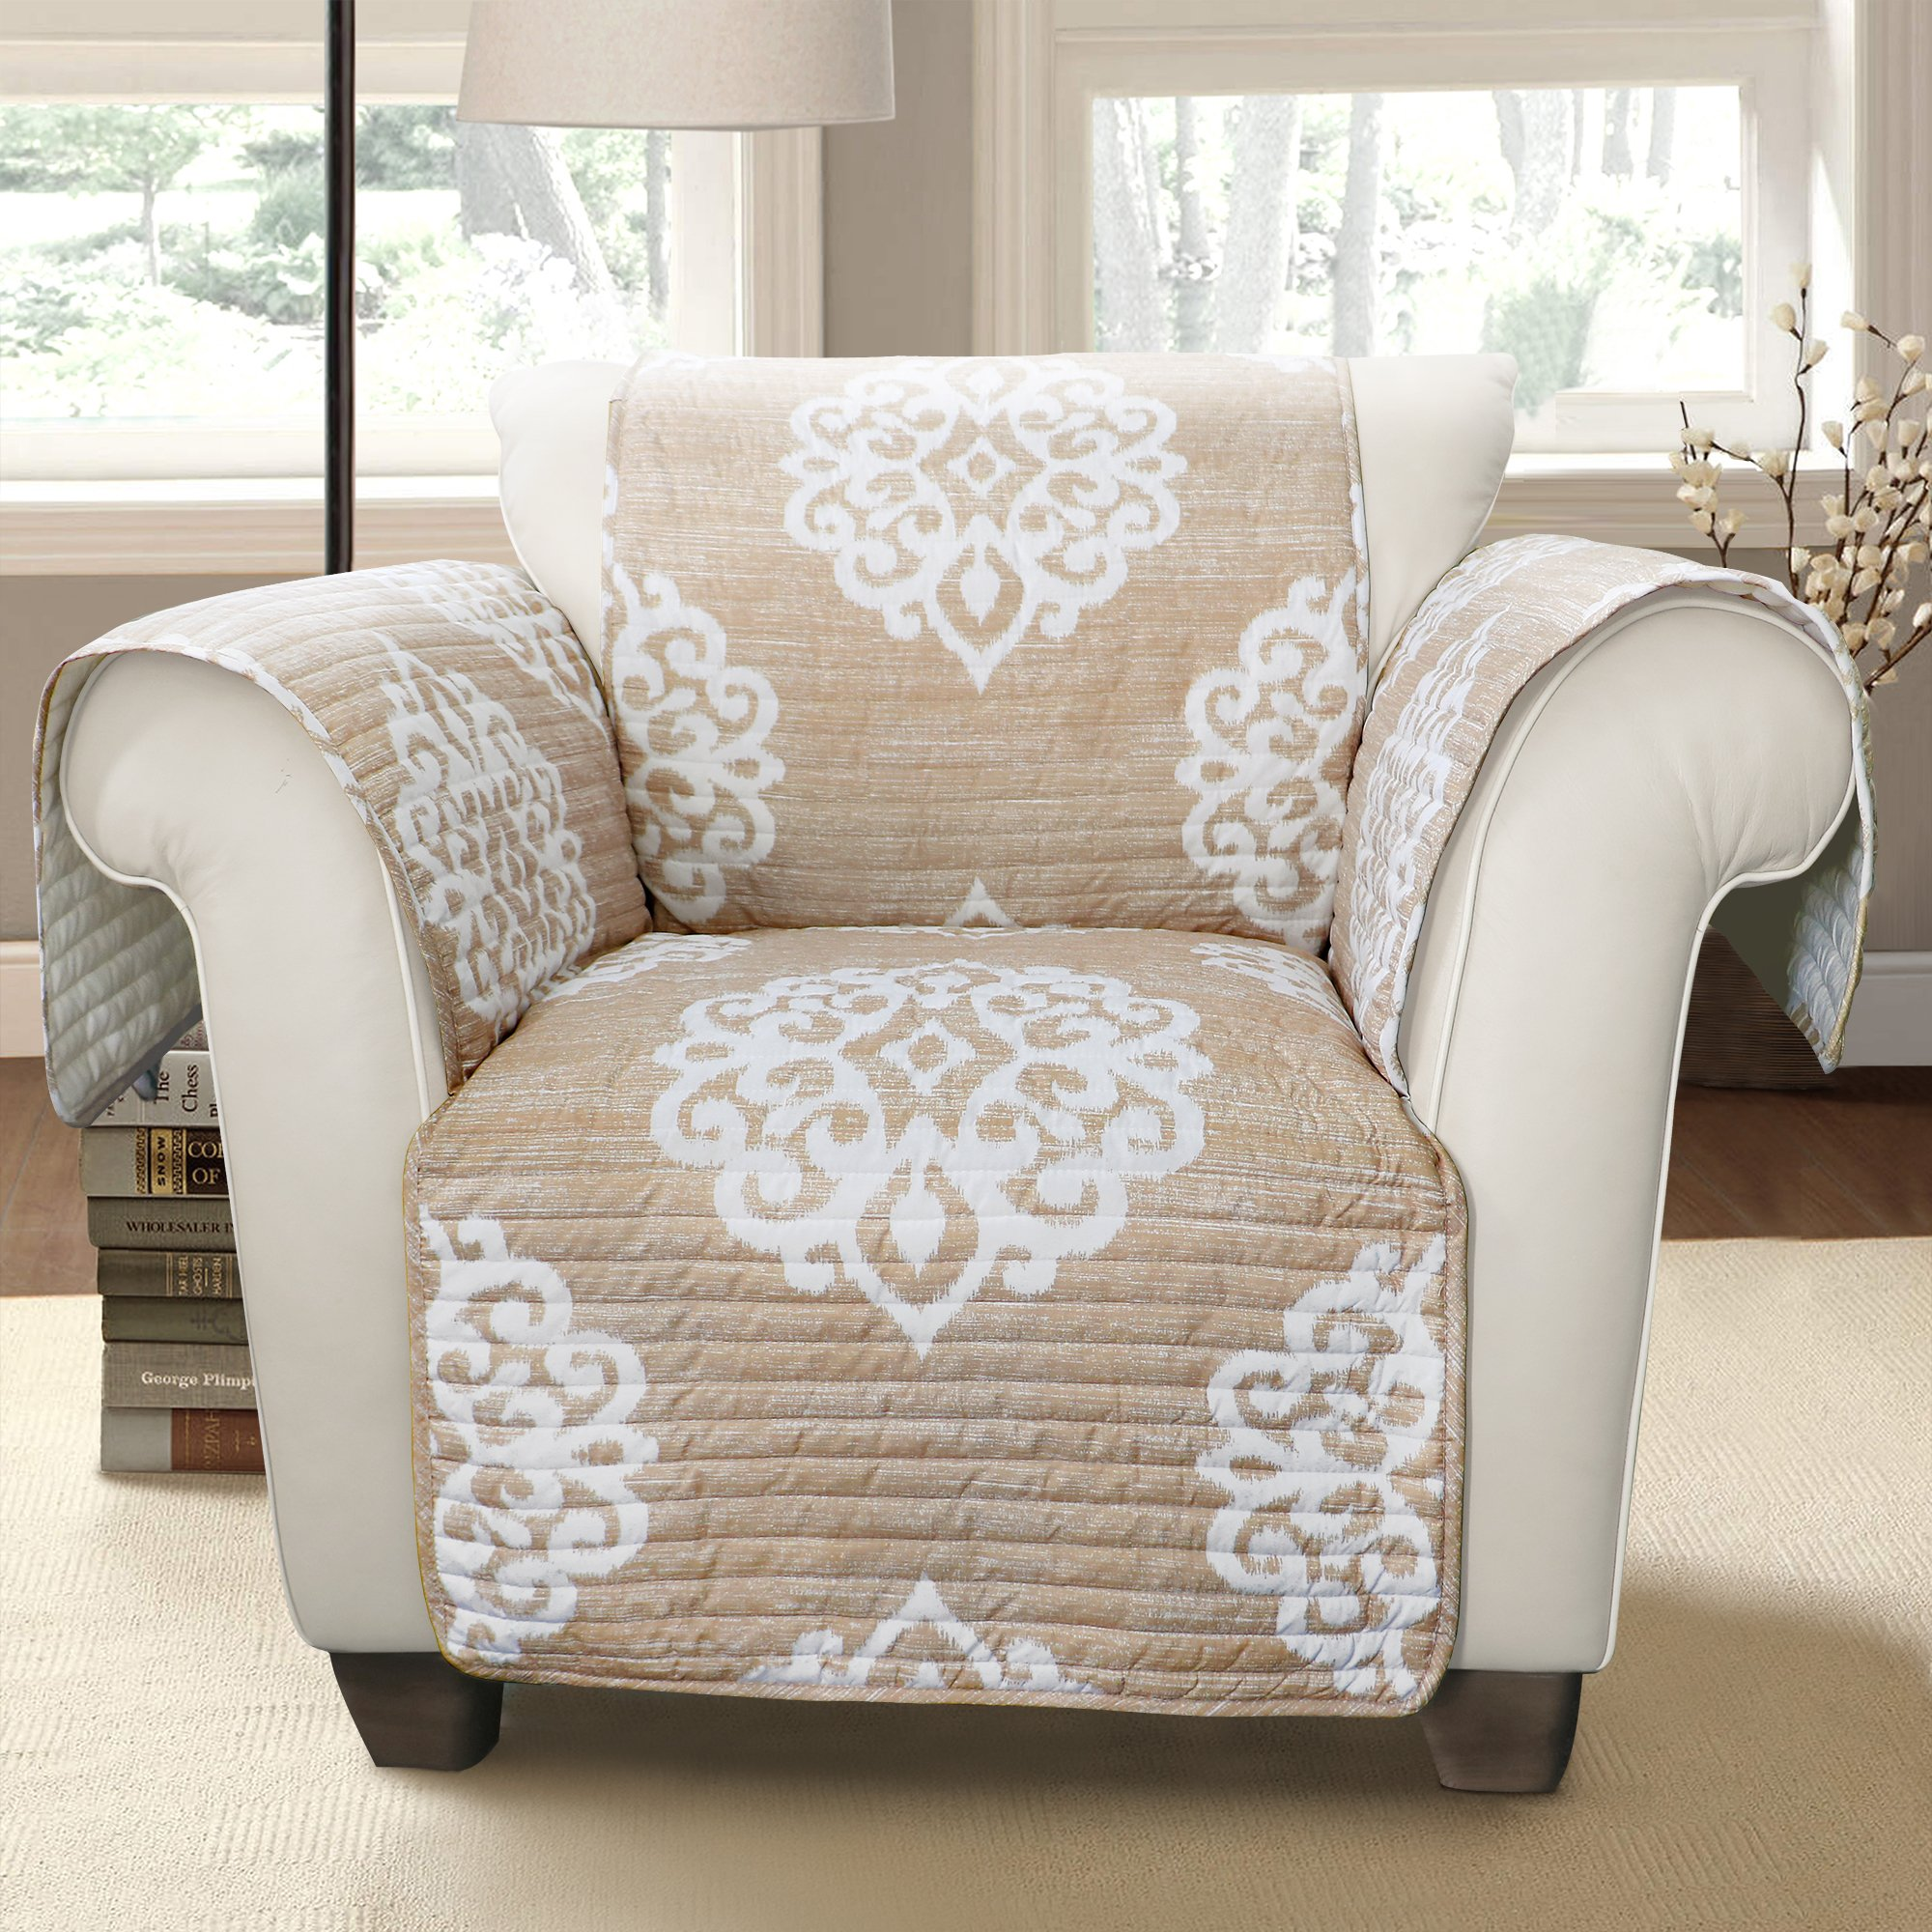 Lush Decor Sophie Arm Chair Furniture Protector, Taupe